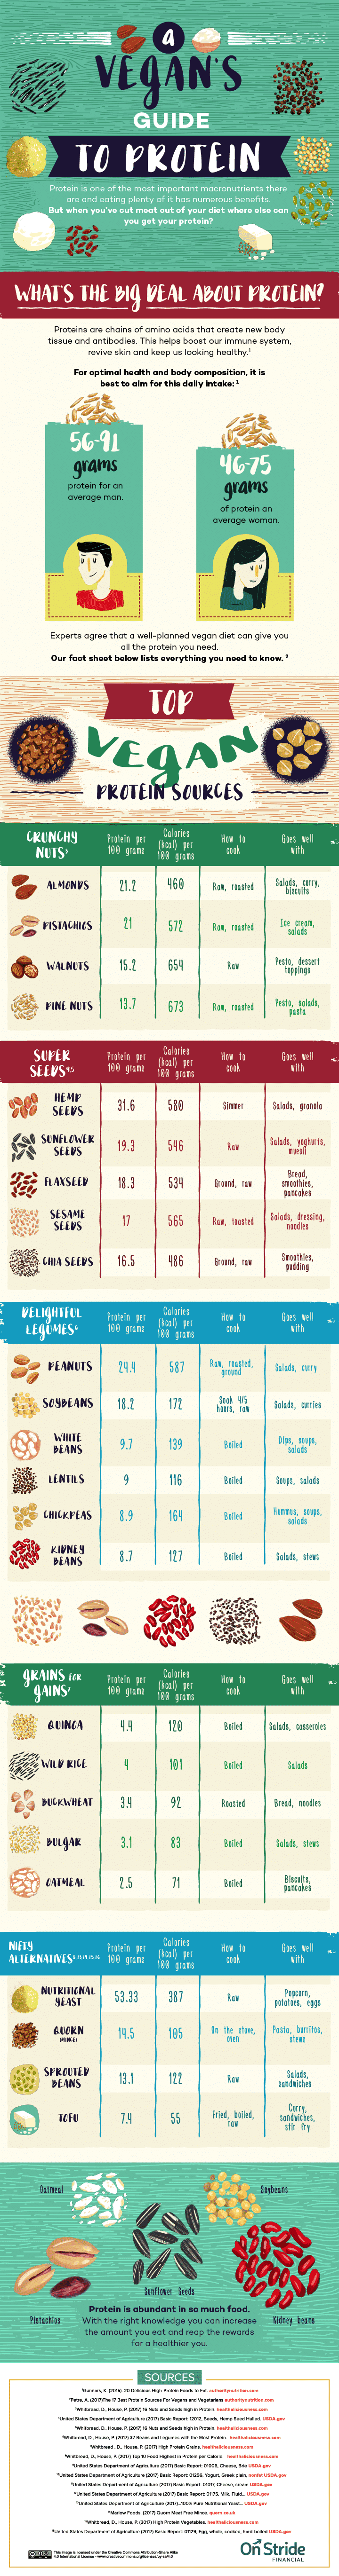 vegan protein sources chart